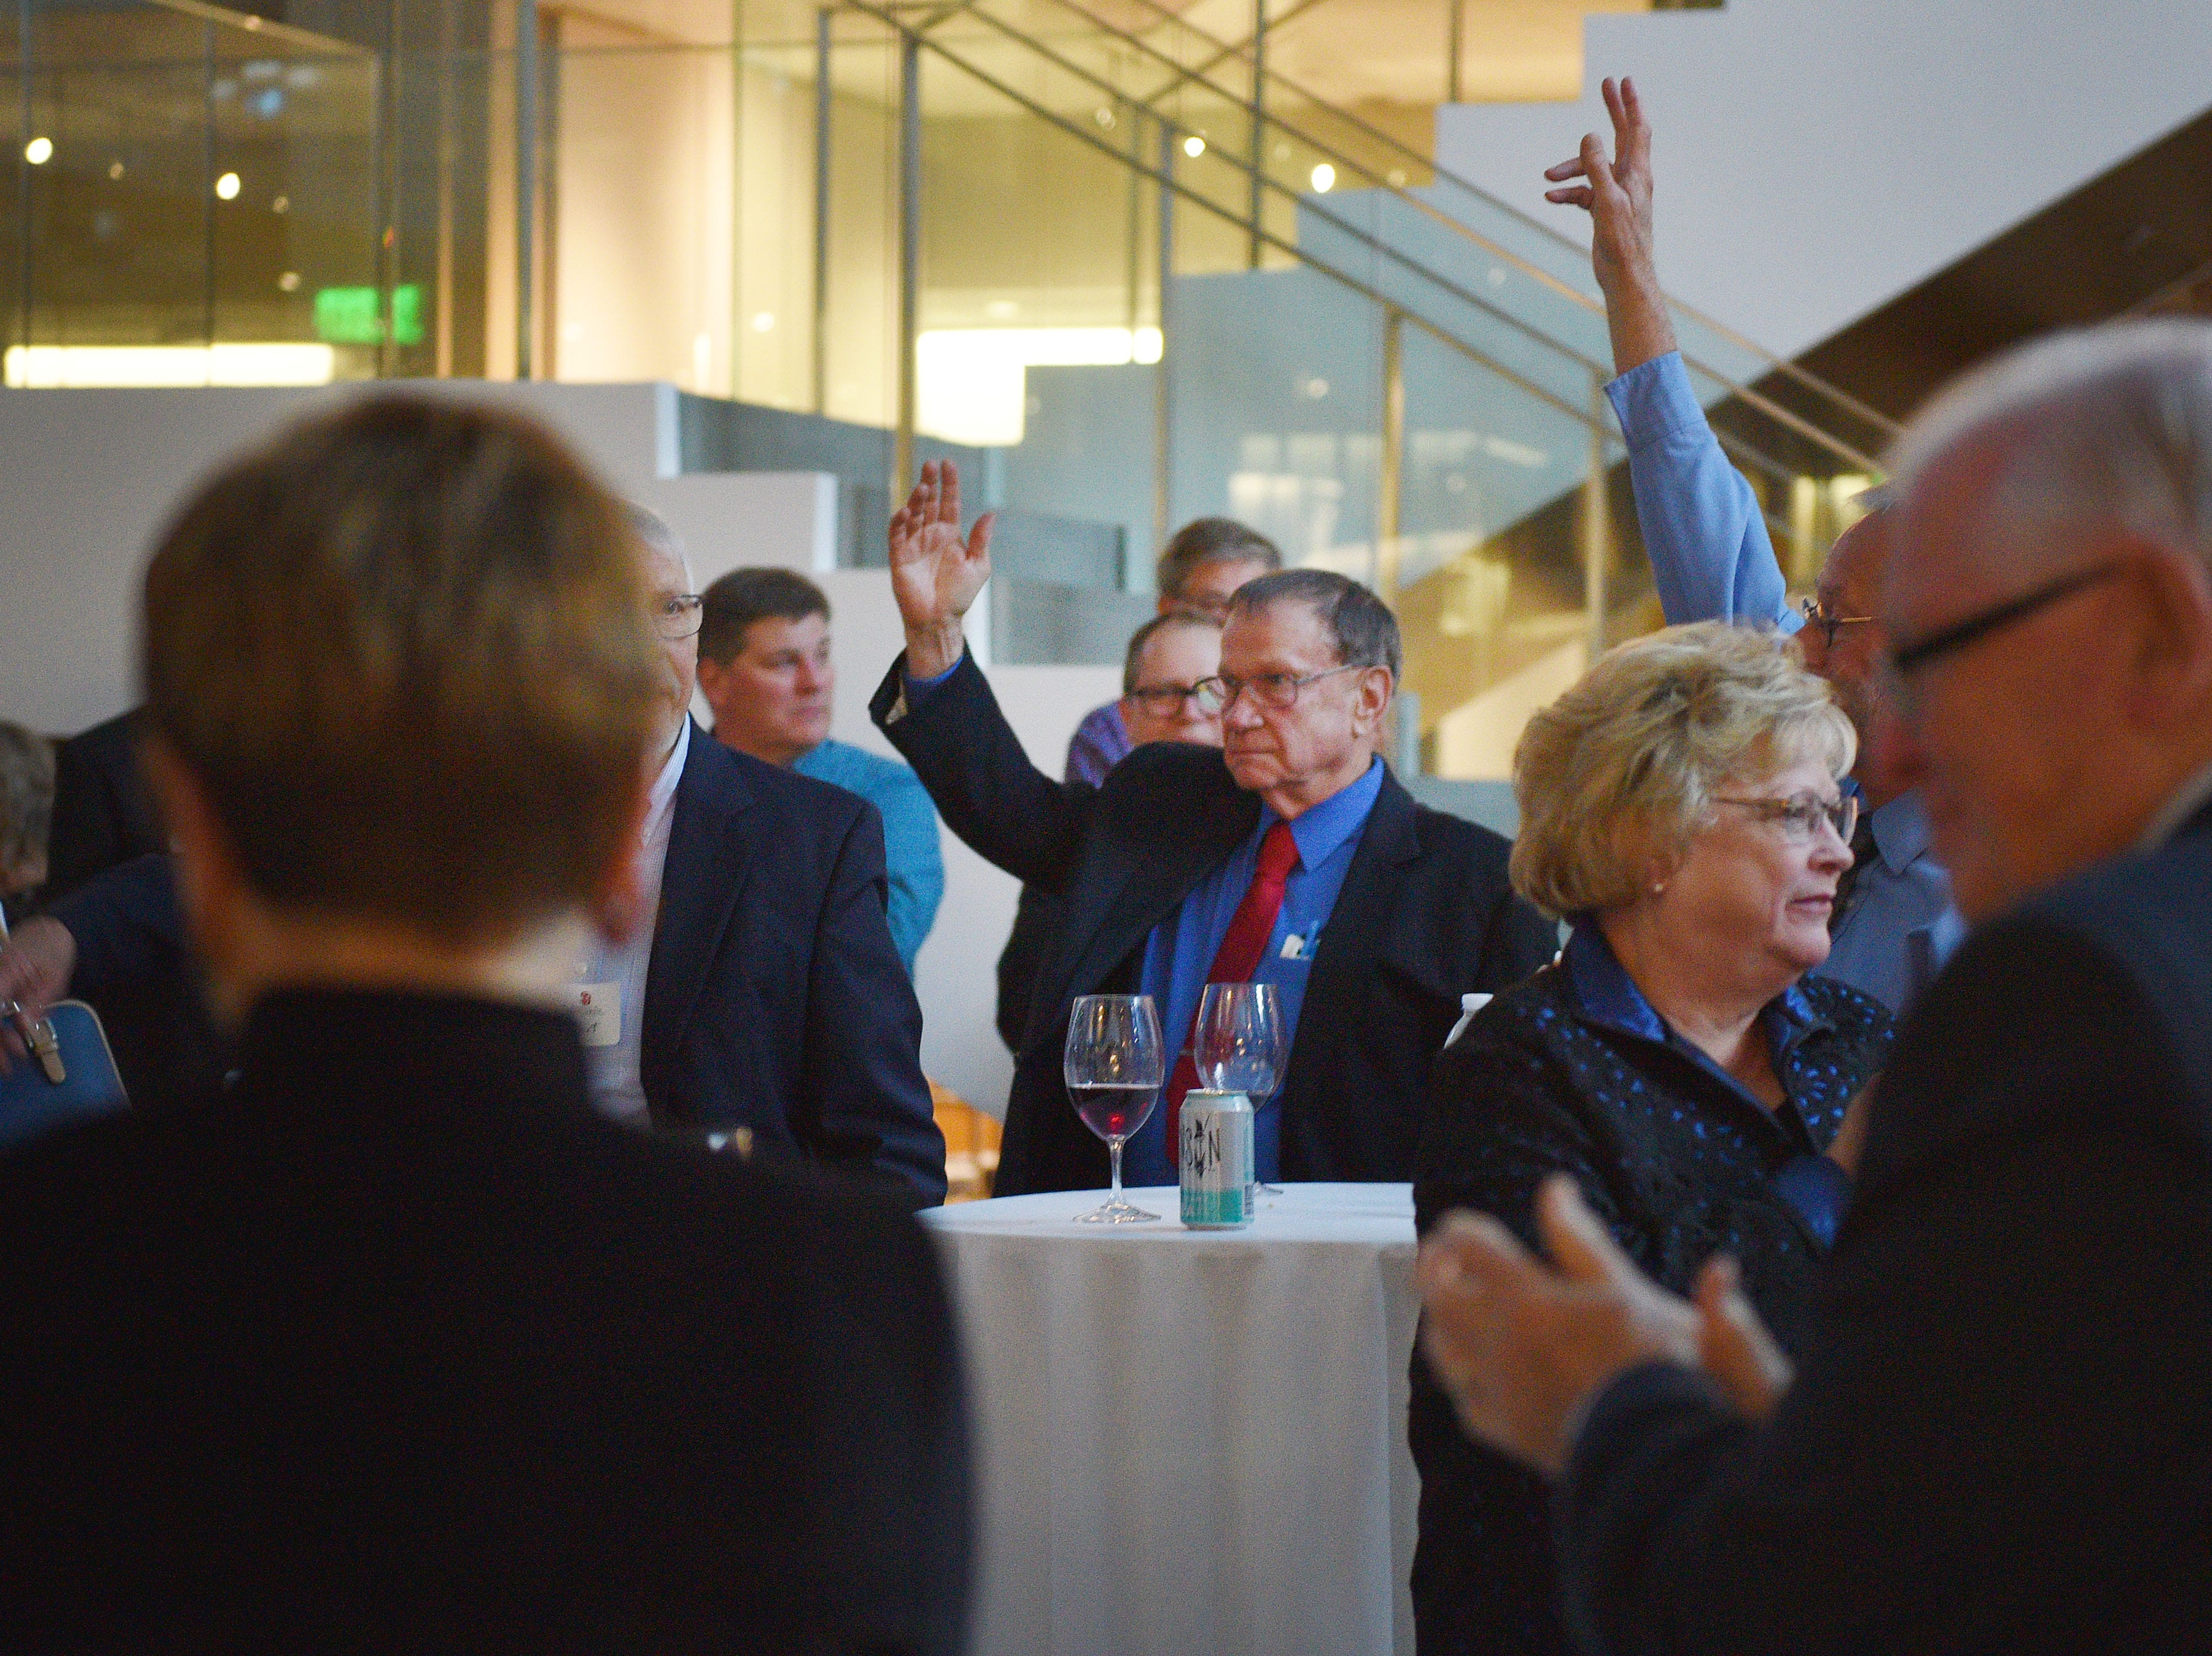 USD residency alumni raise their hands to be recognized at the 60th Anniversary celebration Wednesday, Oct. 24, at Sanford Imagenetics in Sioux Falls.